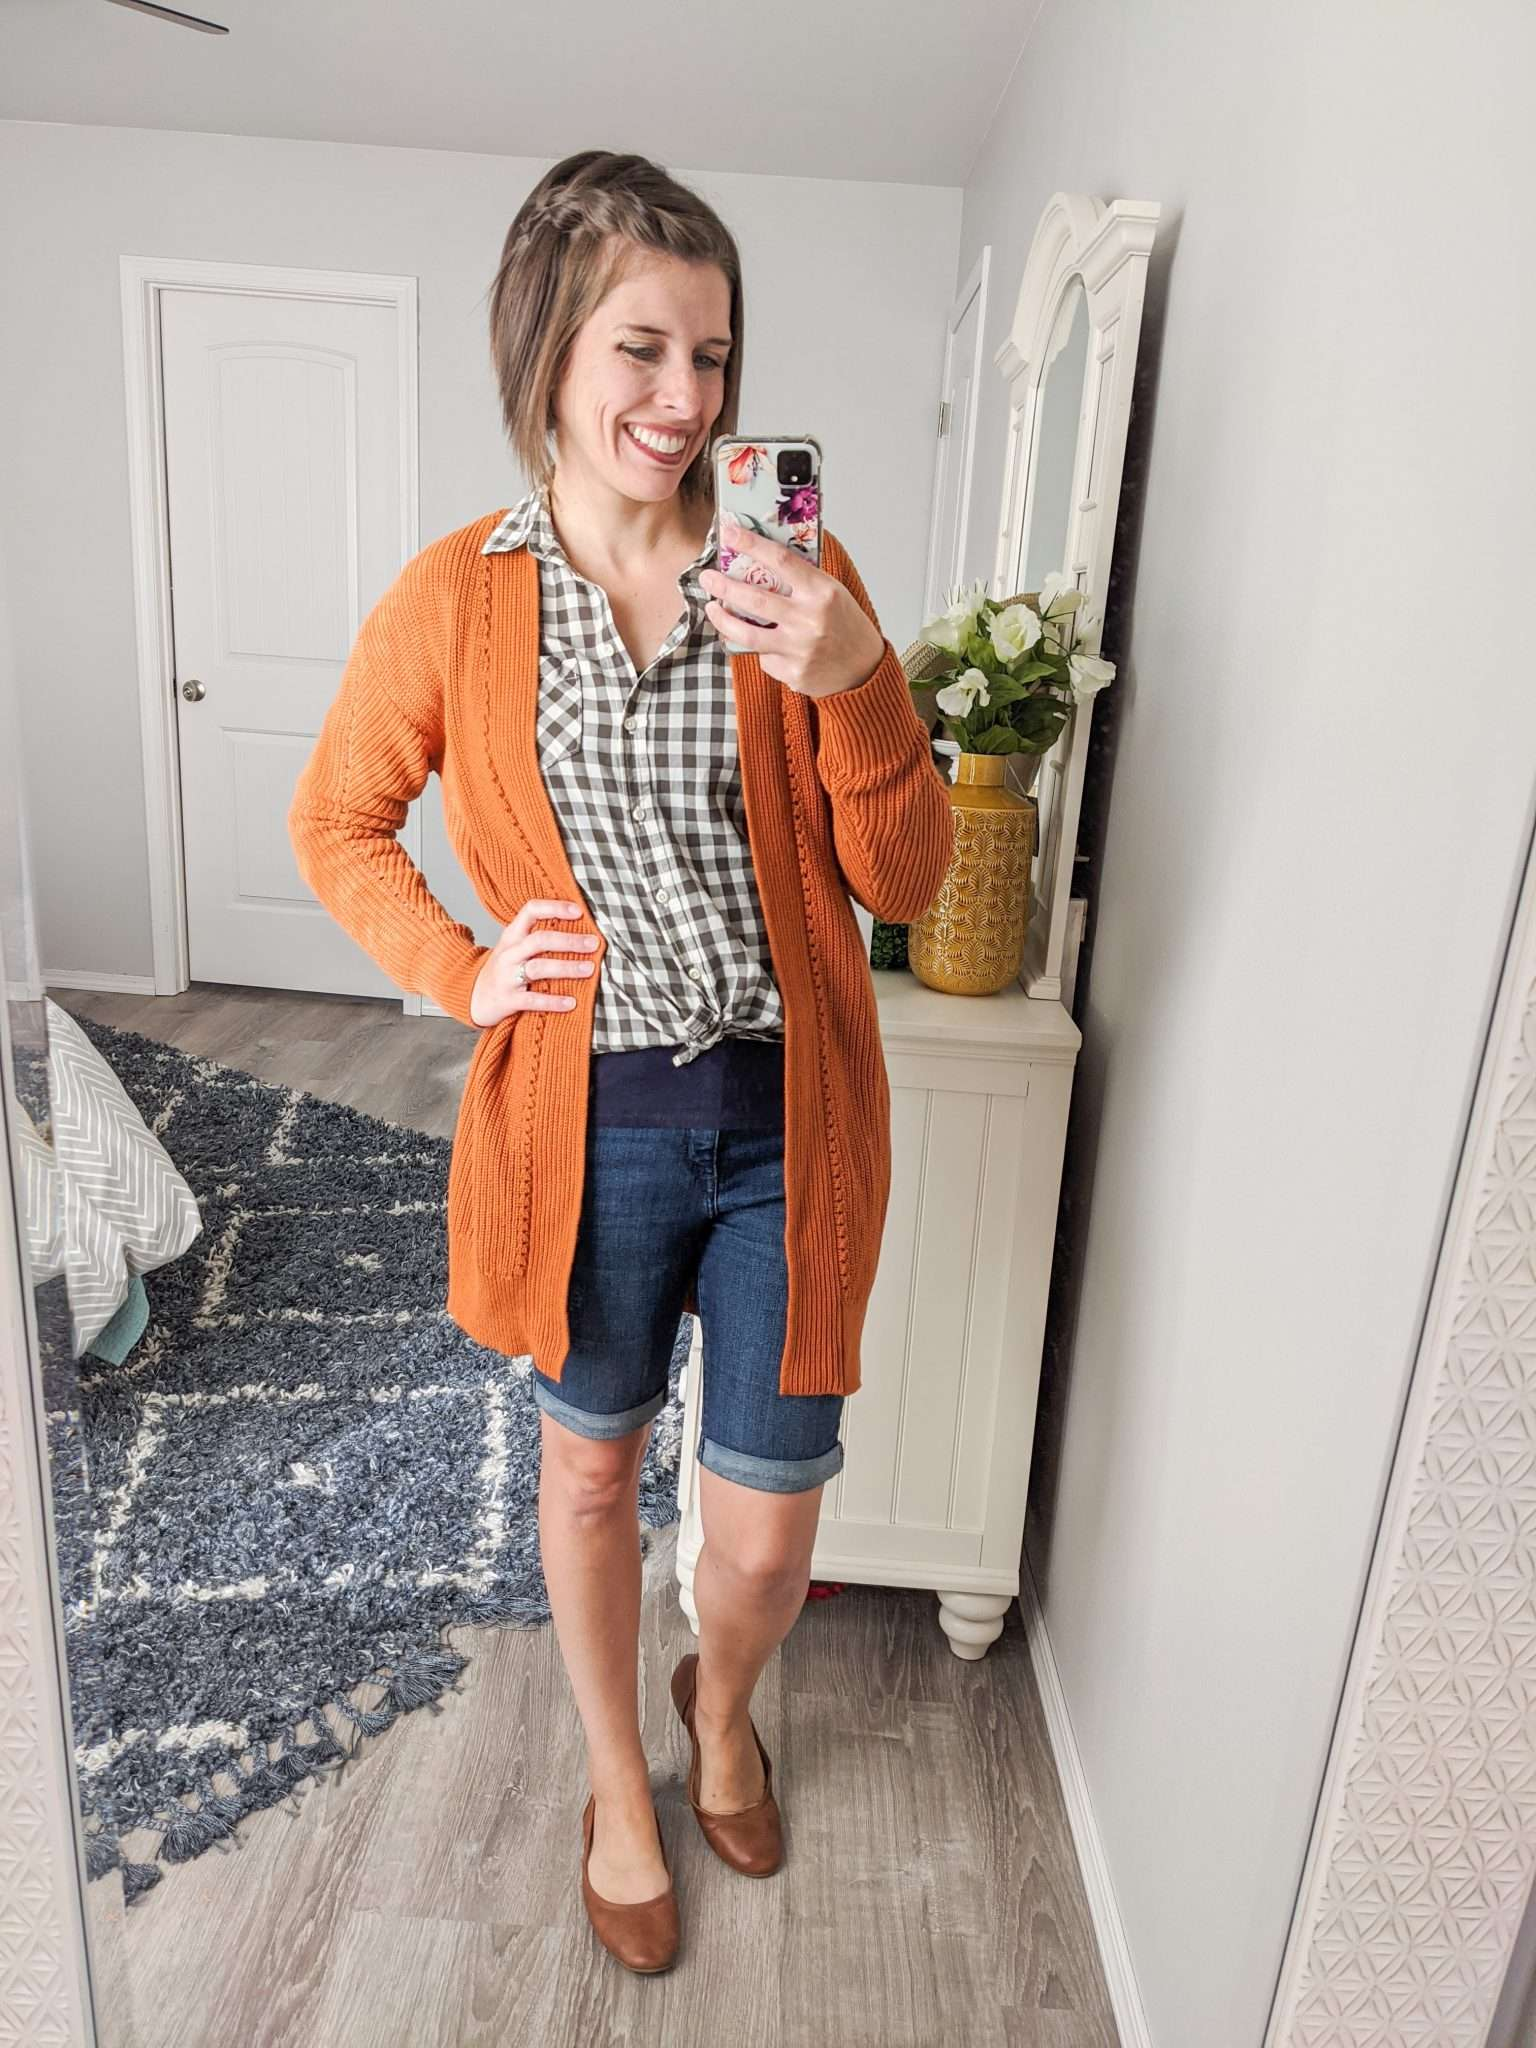 Summer to Fall transition outfits - How to transition summer clothes to fall - Shorts and a cardigan combo